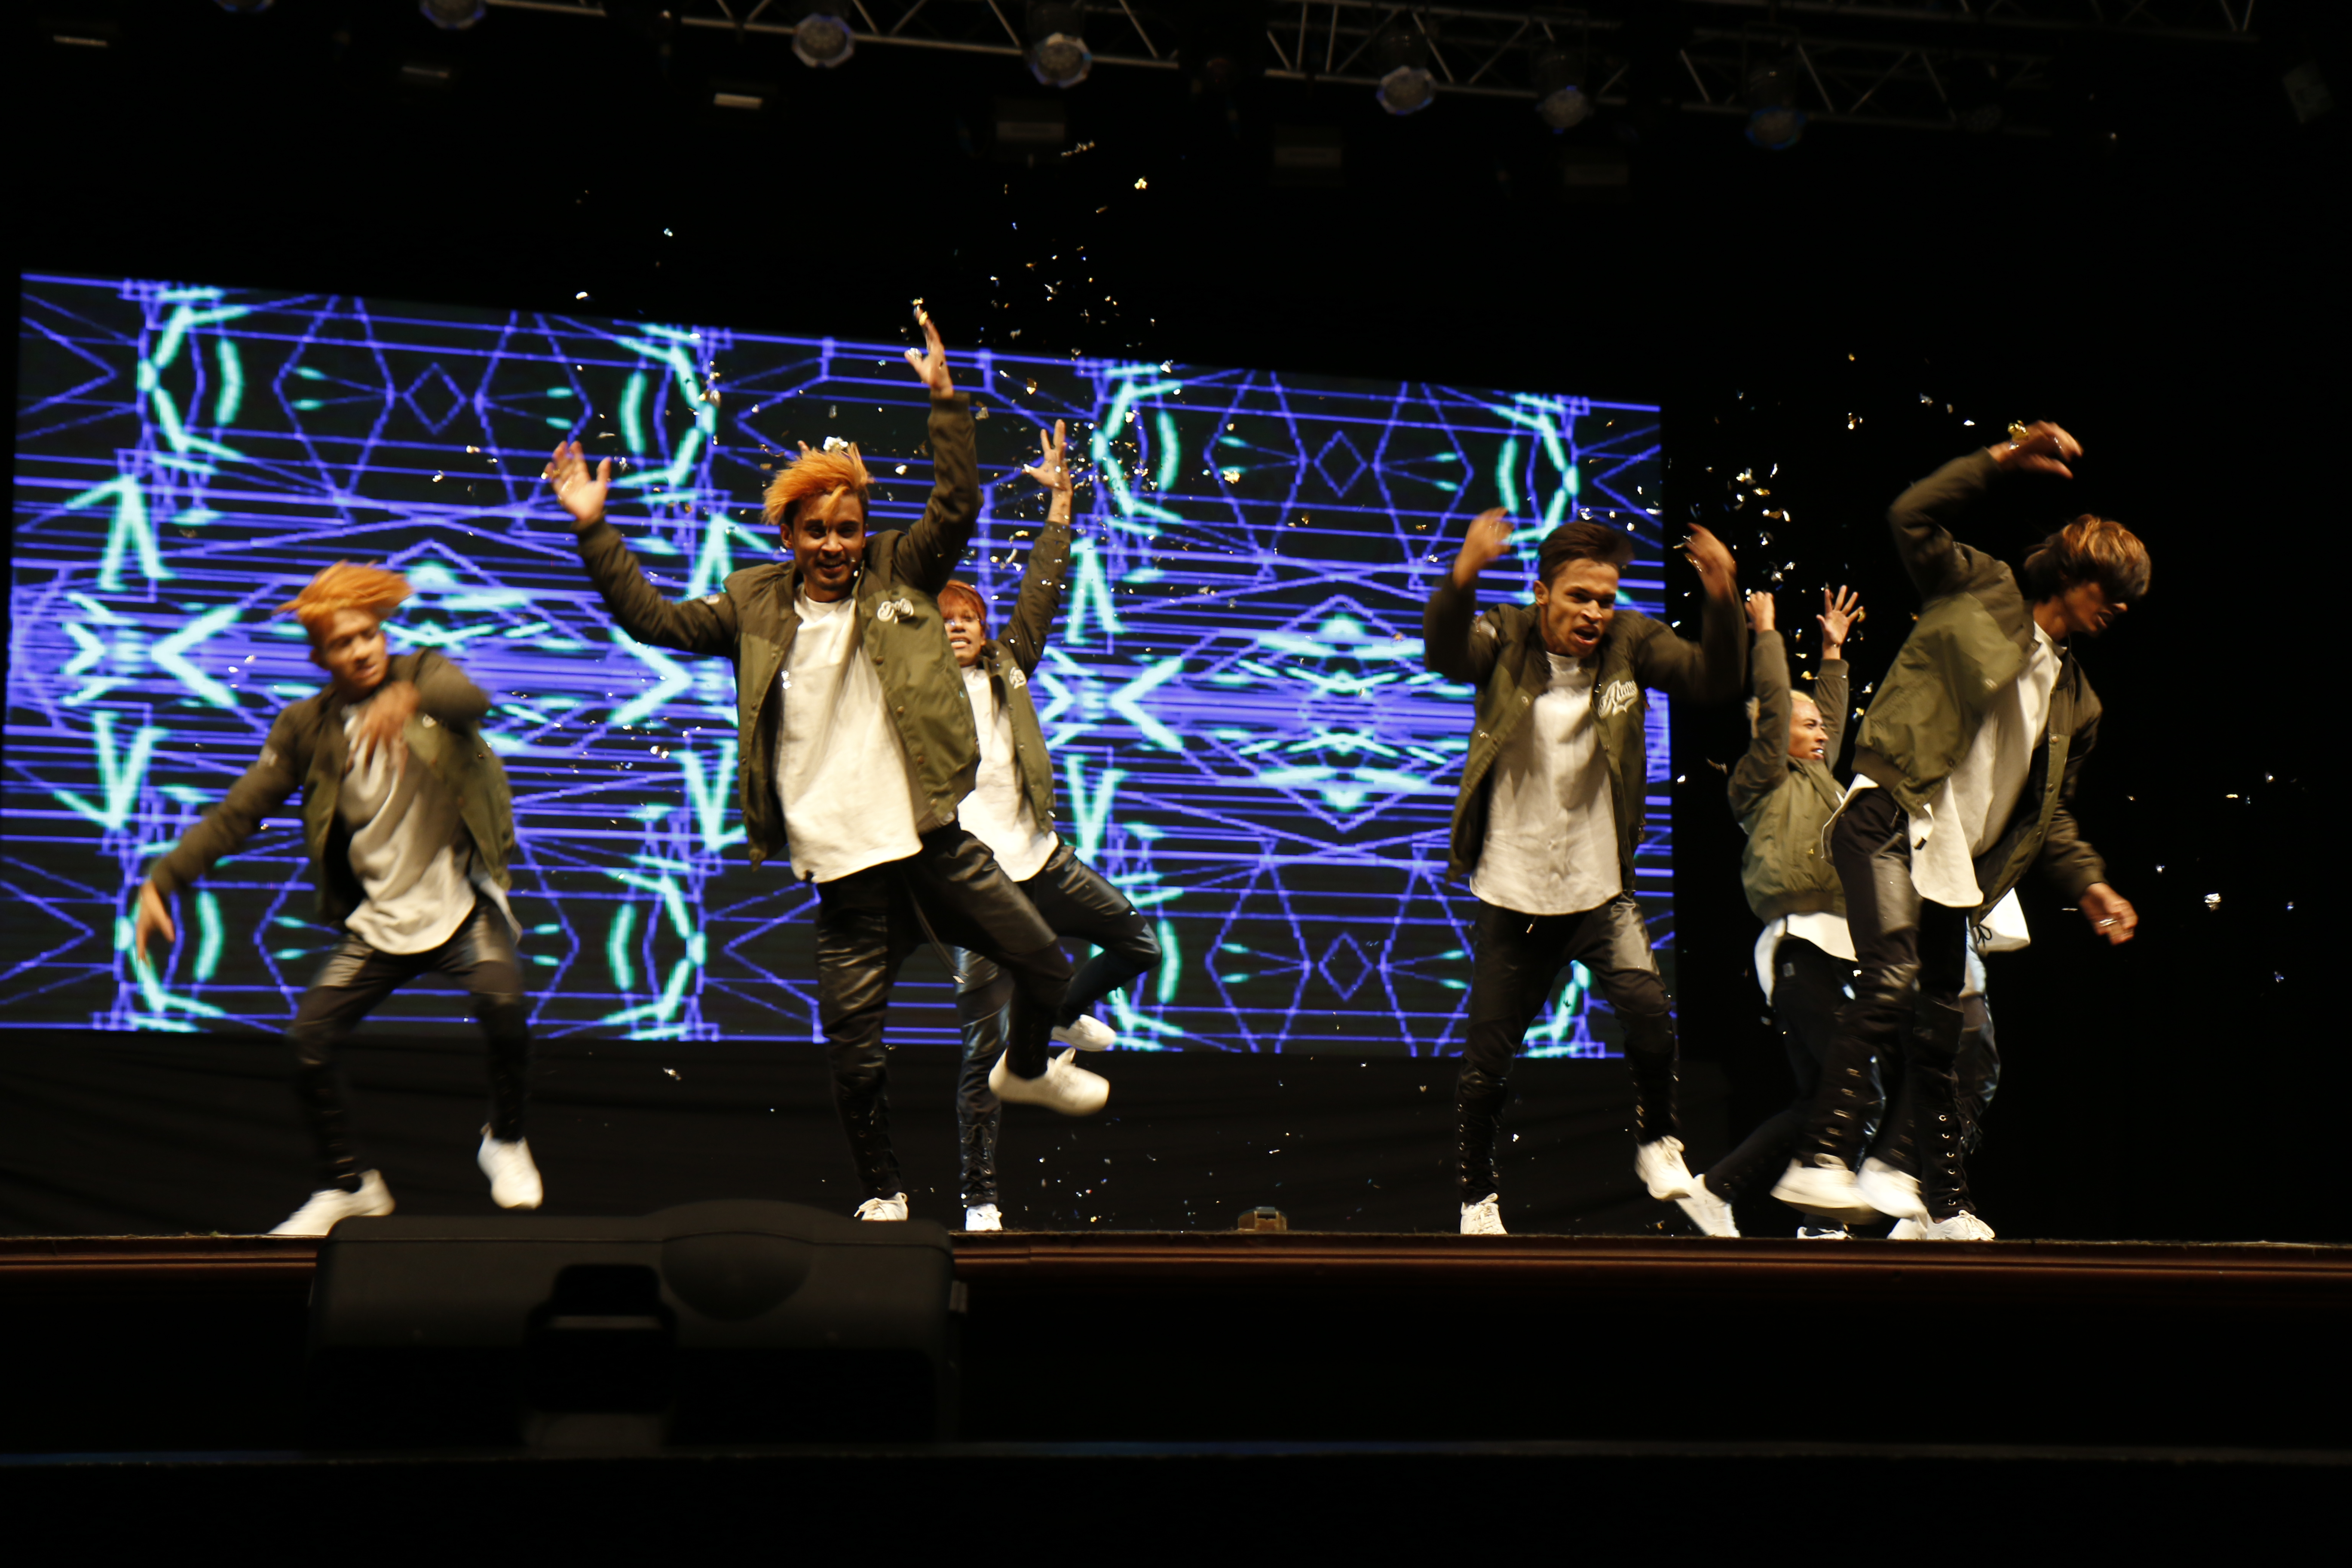 The biggest K-pop event in India starts from Delhi on 24th June in New Delhi